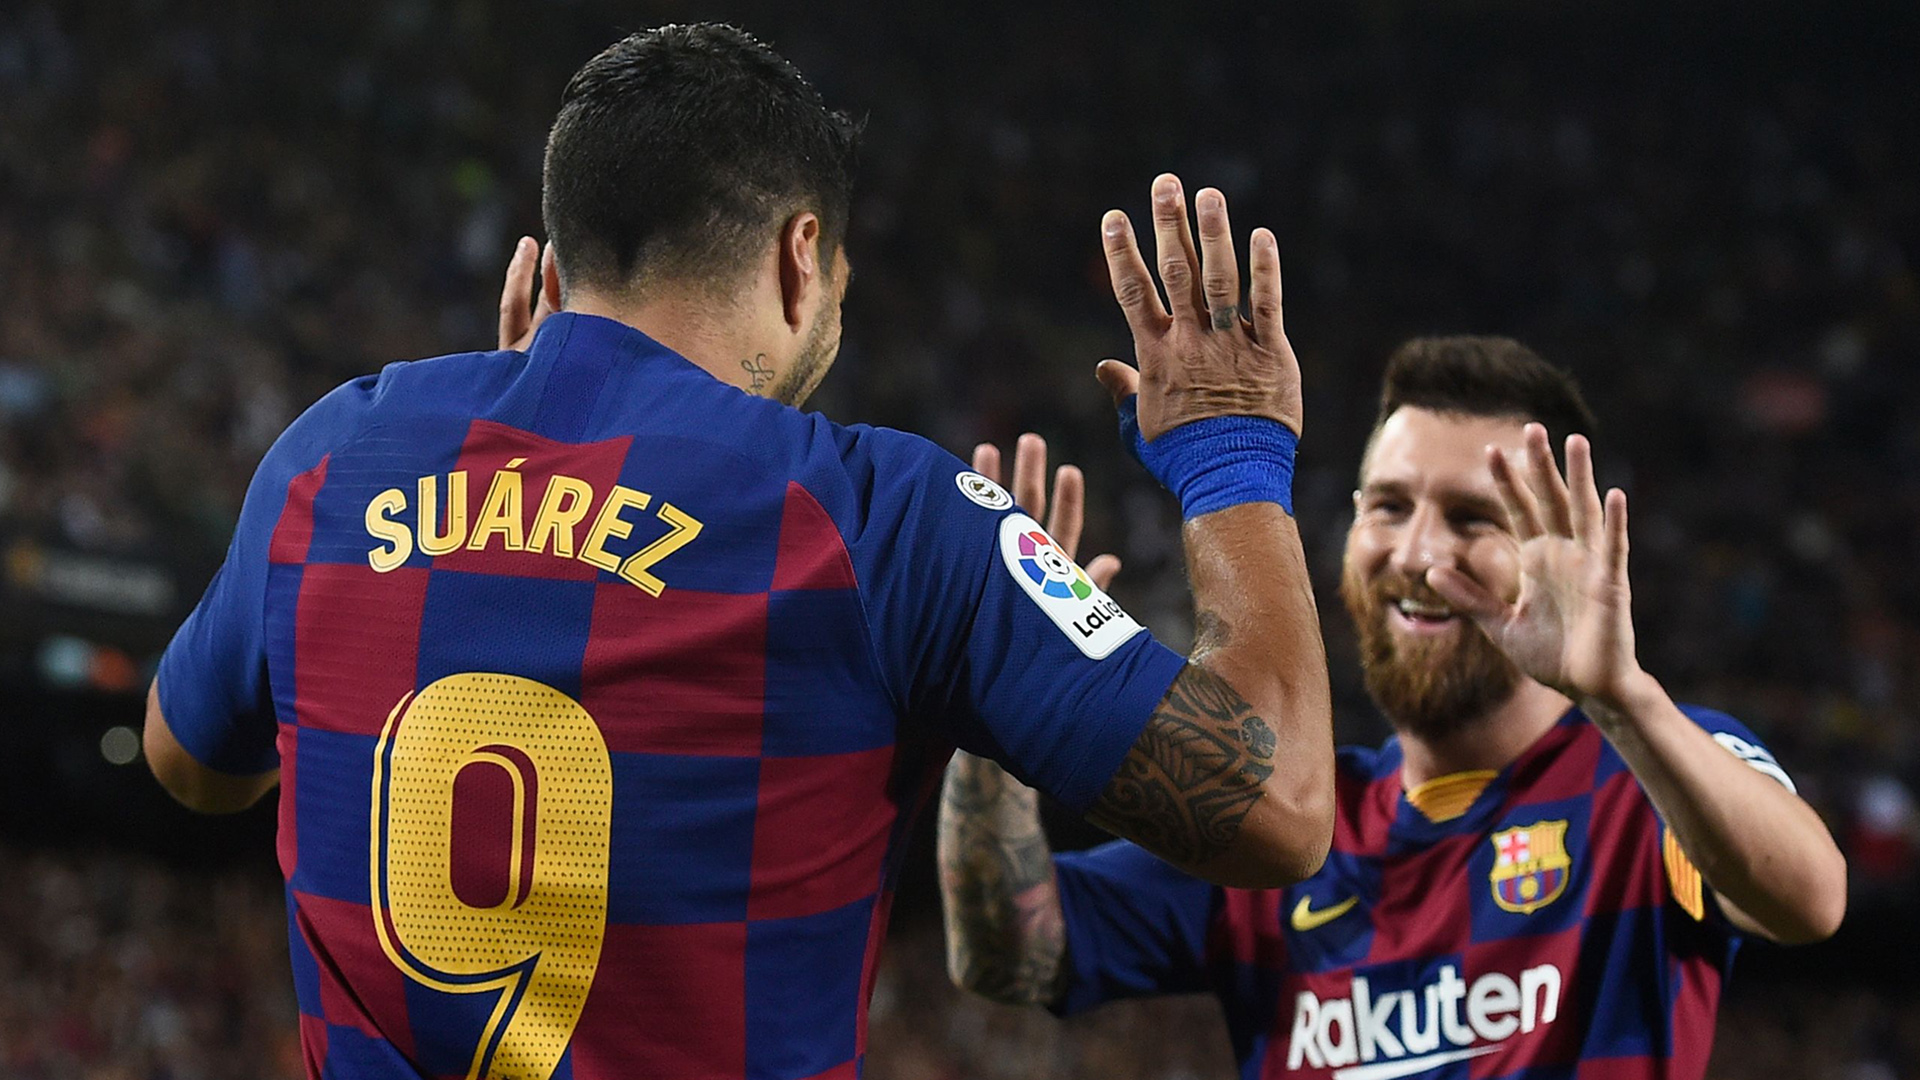 'Everybody knows Messi is the best' - Suarez says Barca team-mate proves supremacy 'every day'